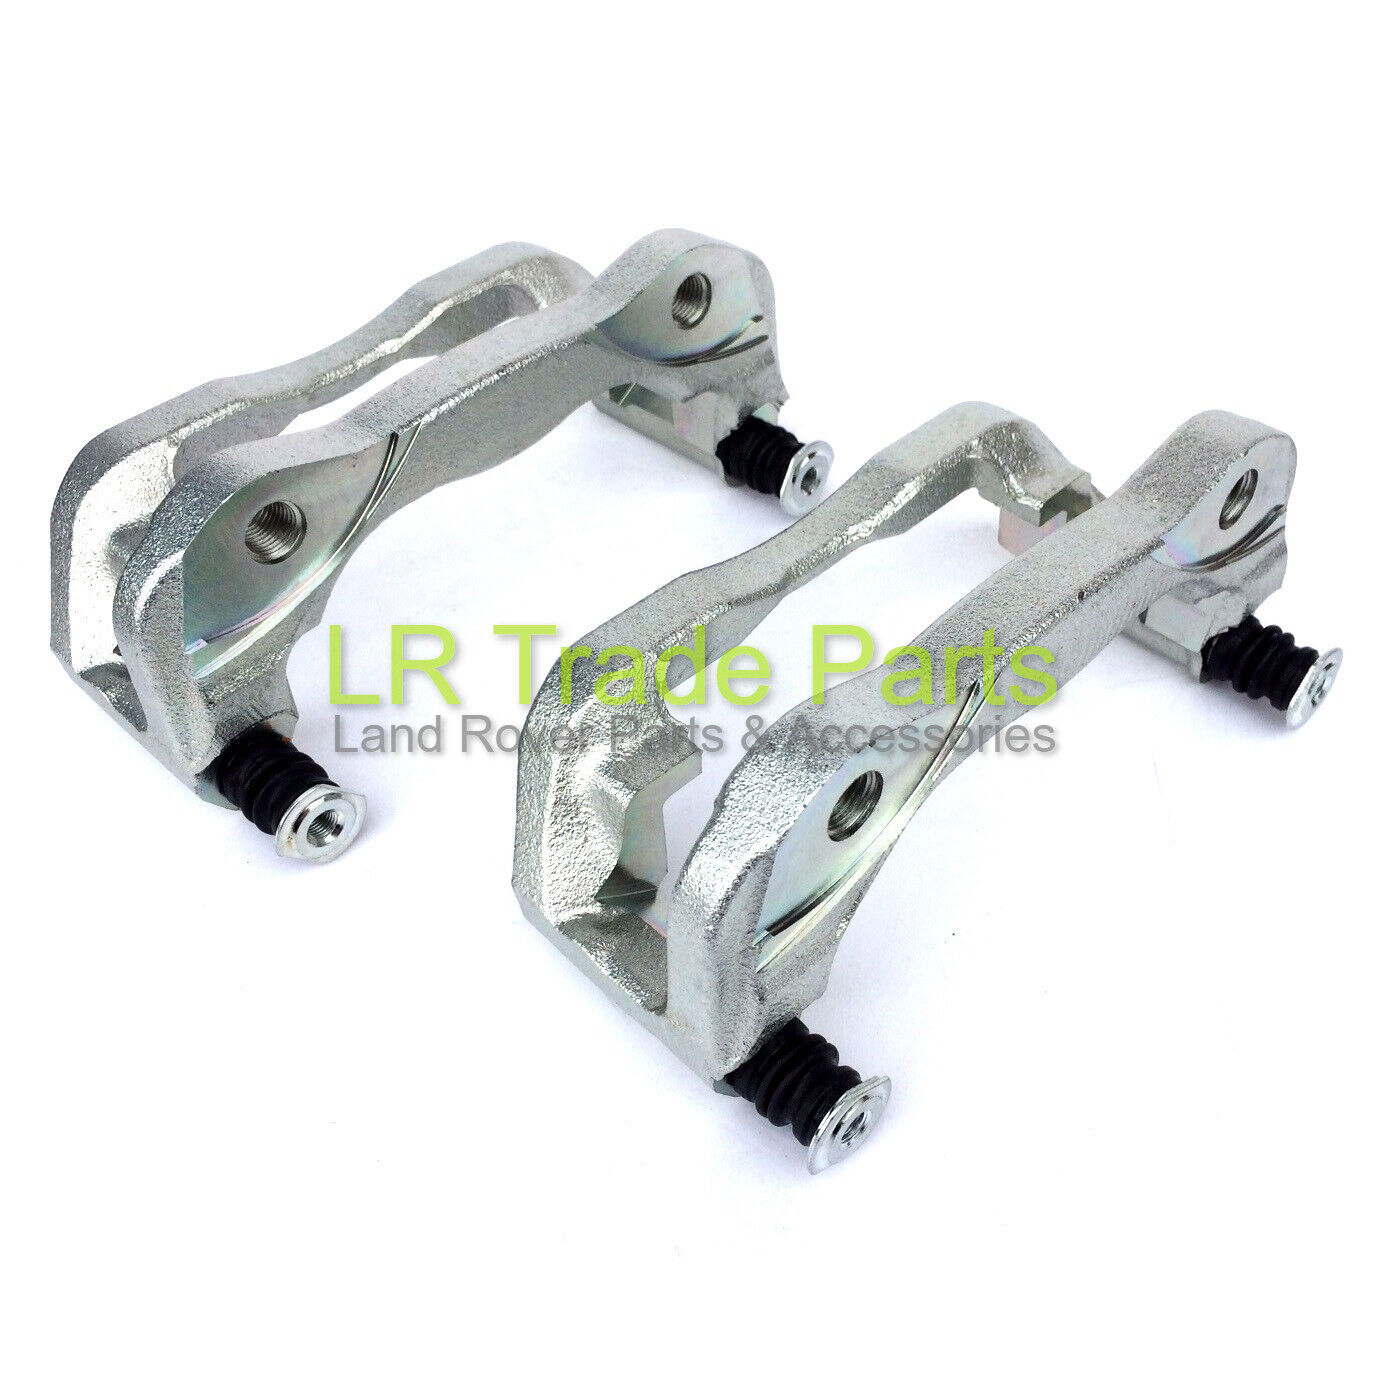 STC1917 LAND ROVER DISCOVERY 2 /& RANGE ROVER P38 FRONT BRAKE CALIPER CARRIER